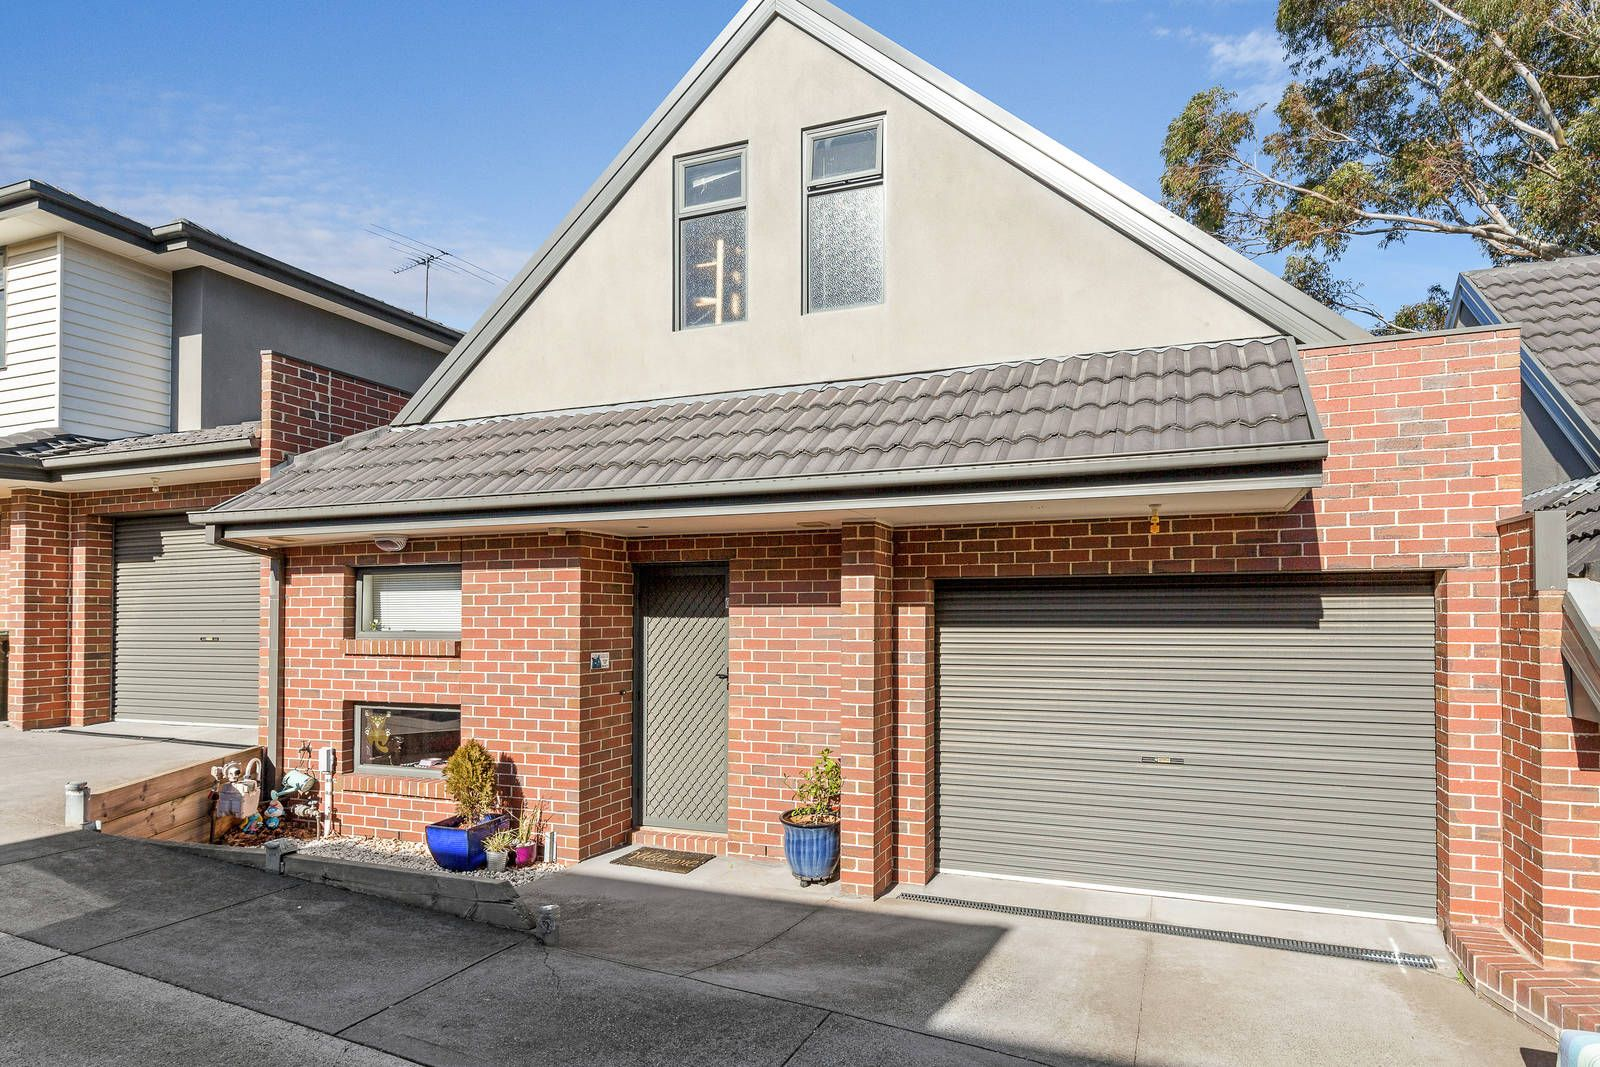 6/17 View Street, Pascoe Vale VIC 3044, Image 0